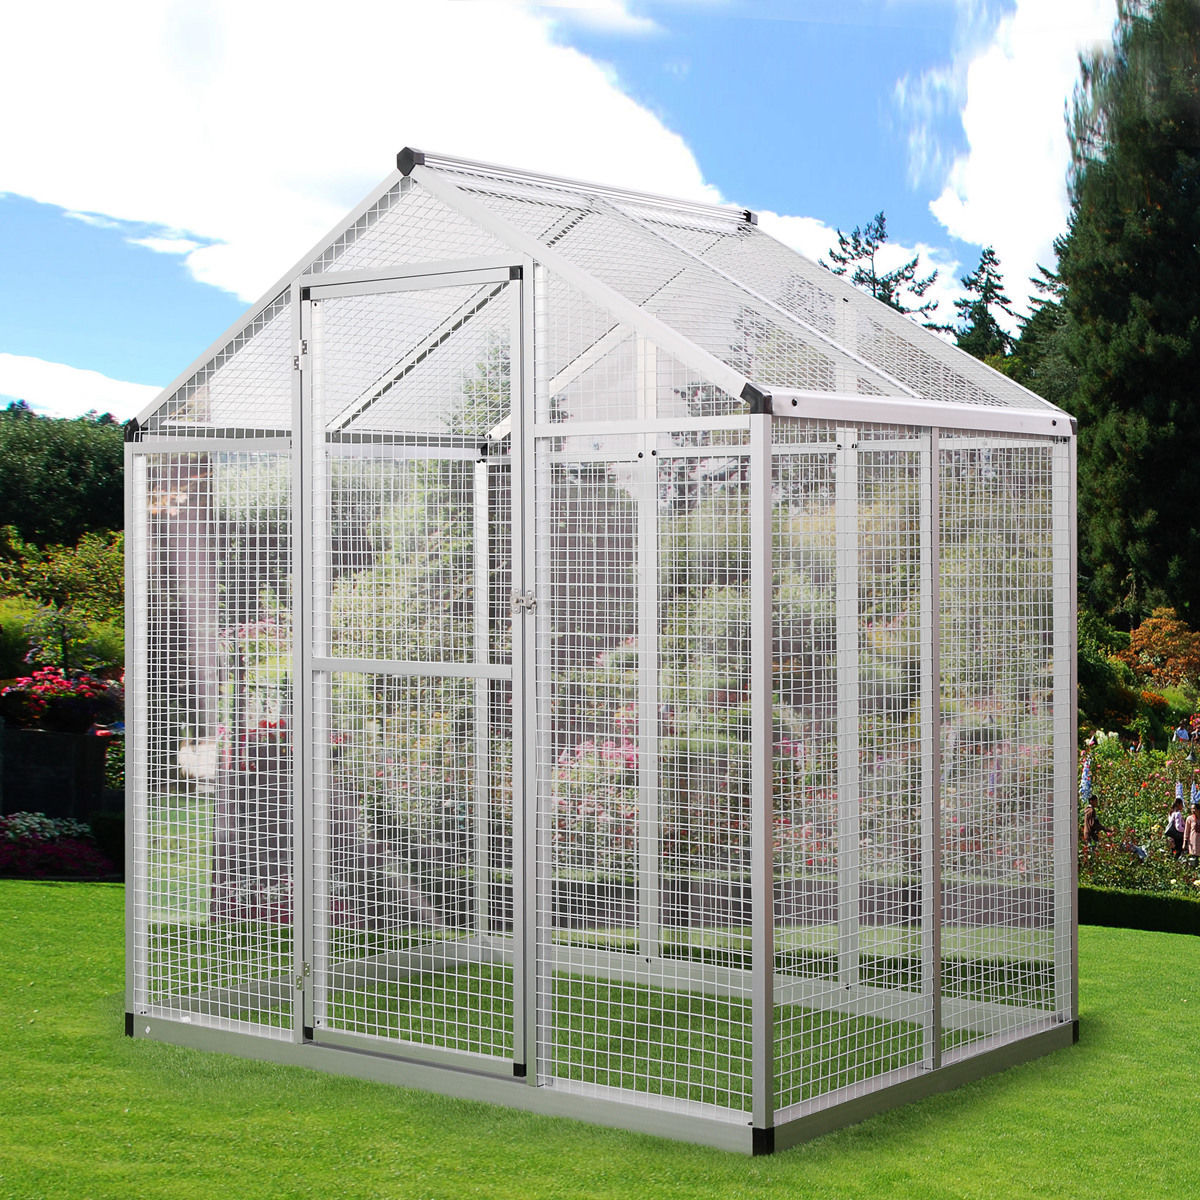 Lazymoon Vision Large Bird Cage Silver Aluminum Bird Aviary Walk In Parrot Cockatiel Macare Finch Cage Pet House Supply